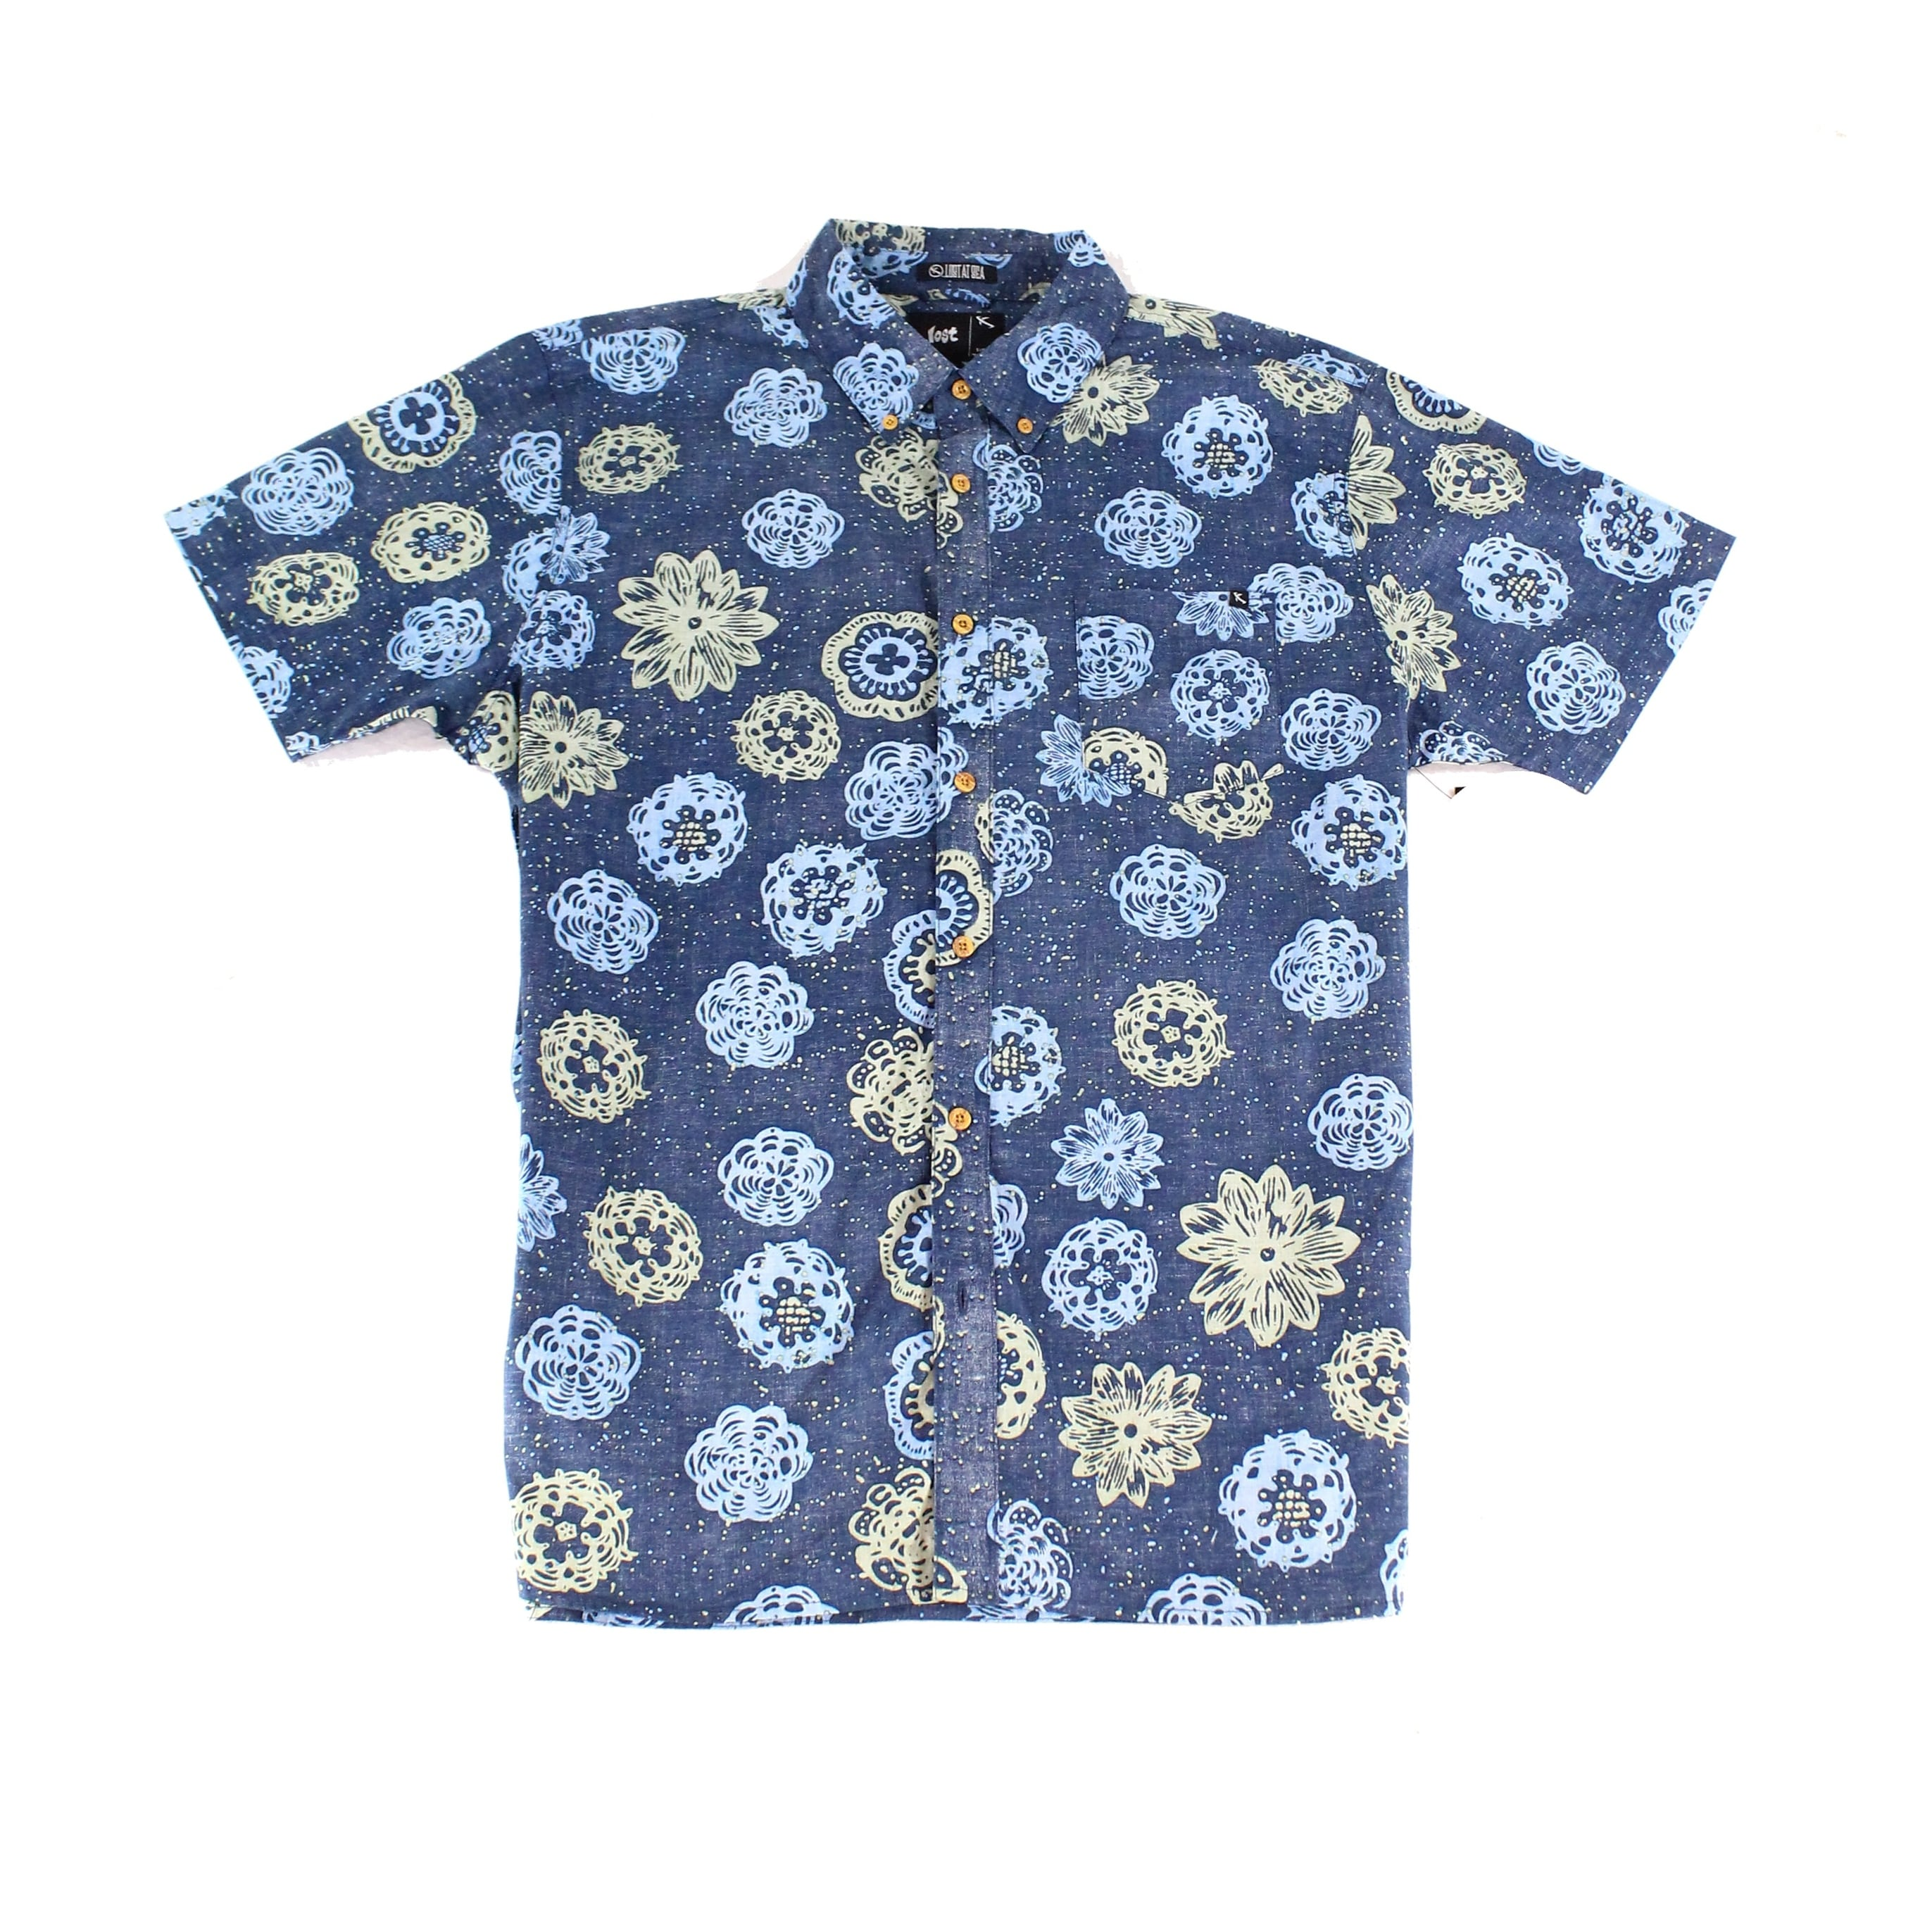 e2a141ad Shop Lost At Sea NEW Navy Blue Mens Size XL Button Down Printed Shirt -  Free Shipping On Orders Over $45 - Overstock - 20733813